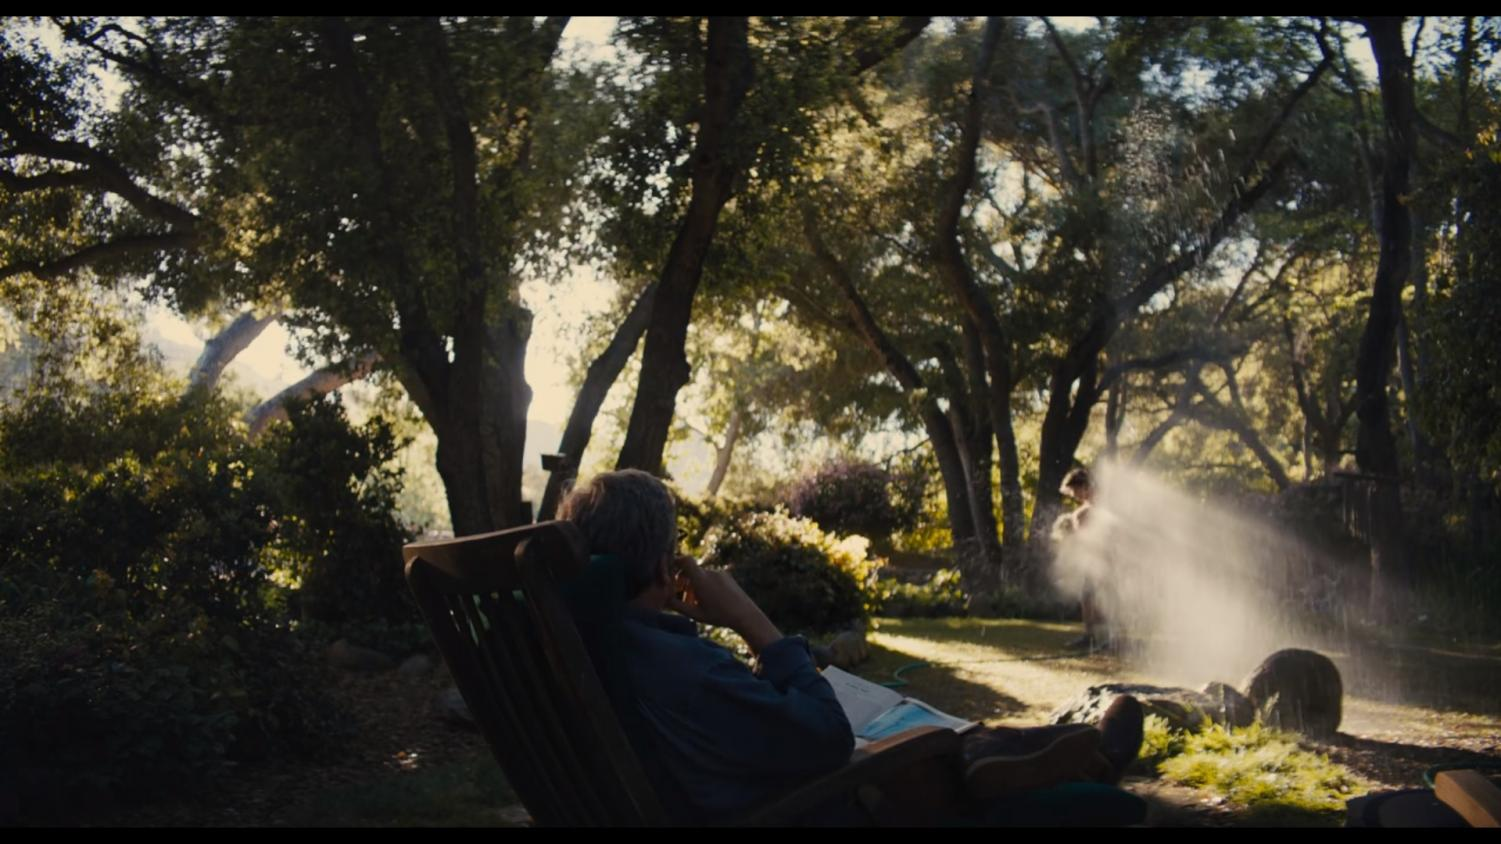 Frame from the 2018 Biopic